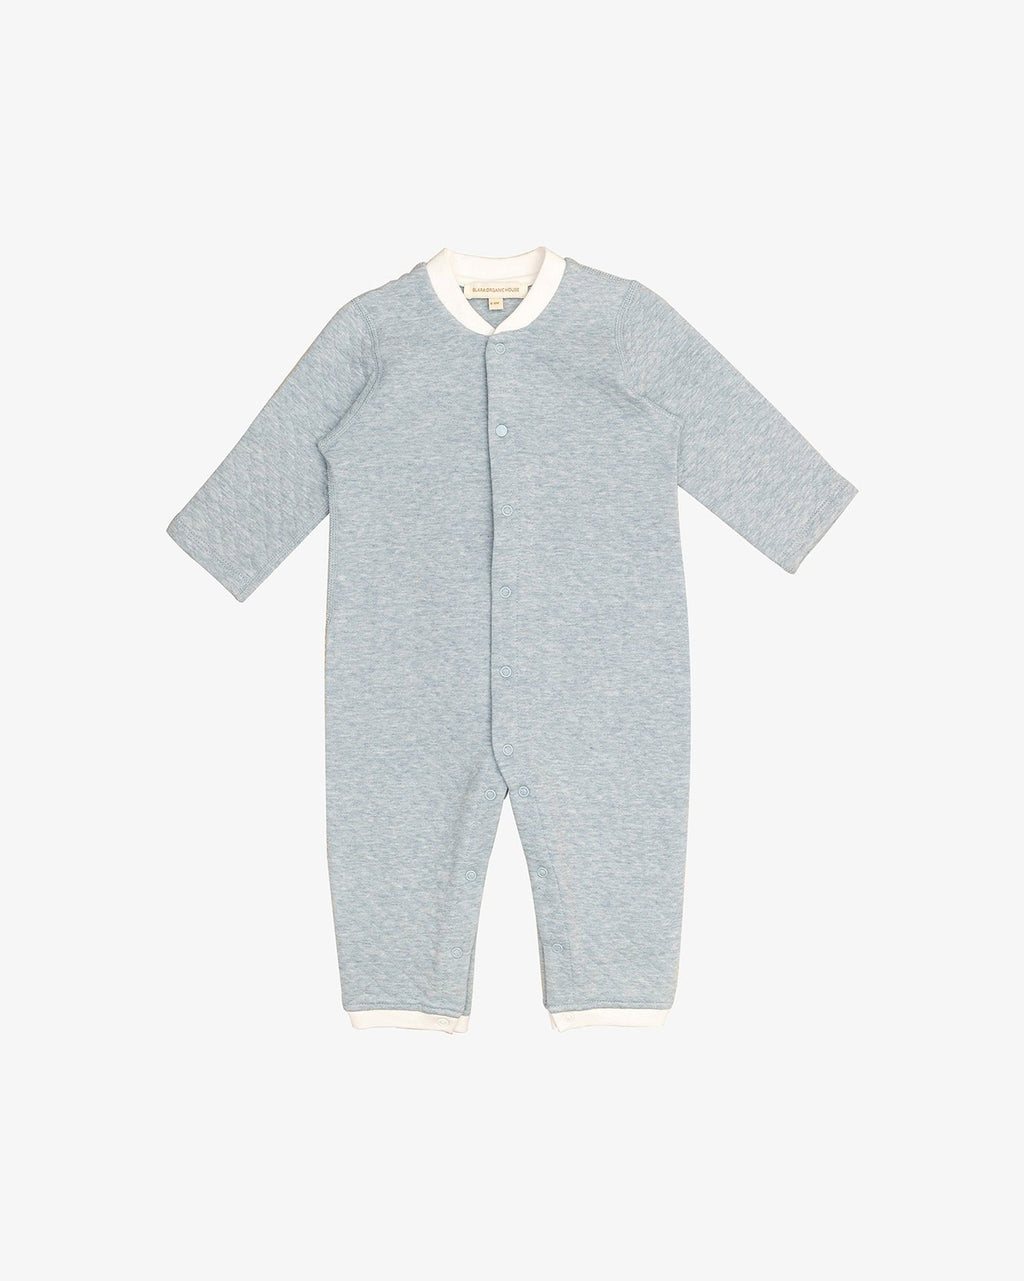 BACK EMBROIDERED DOUBLE-LAYERED COVERALL